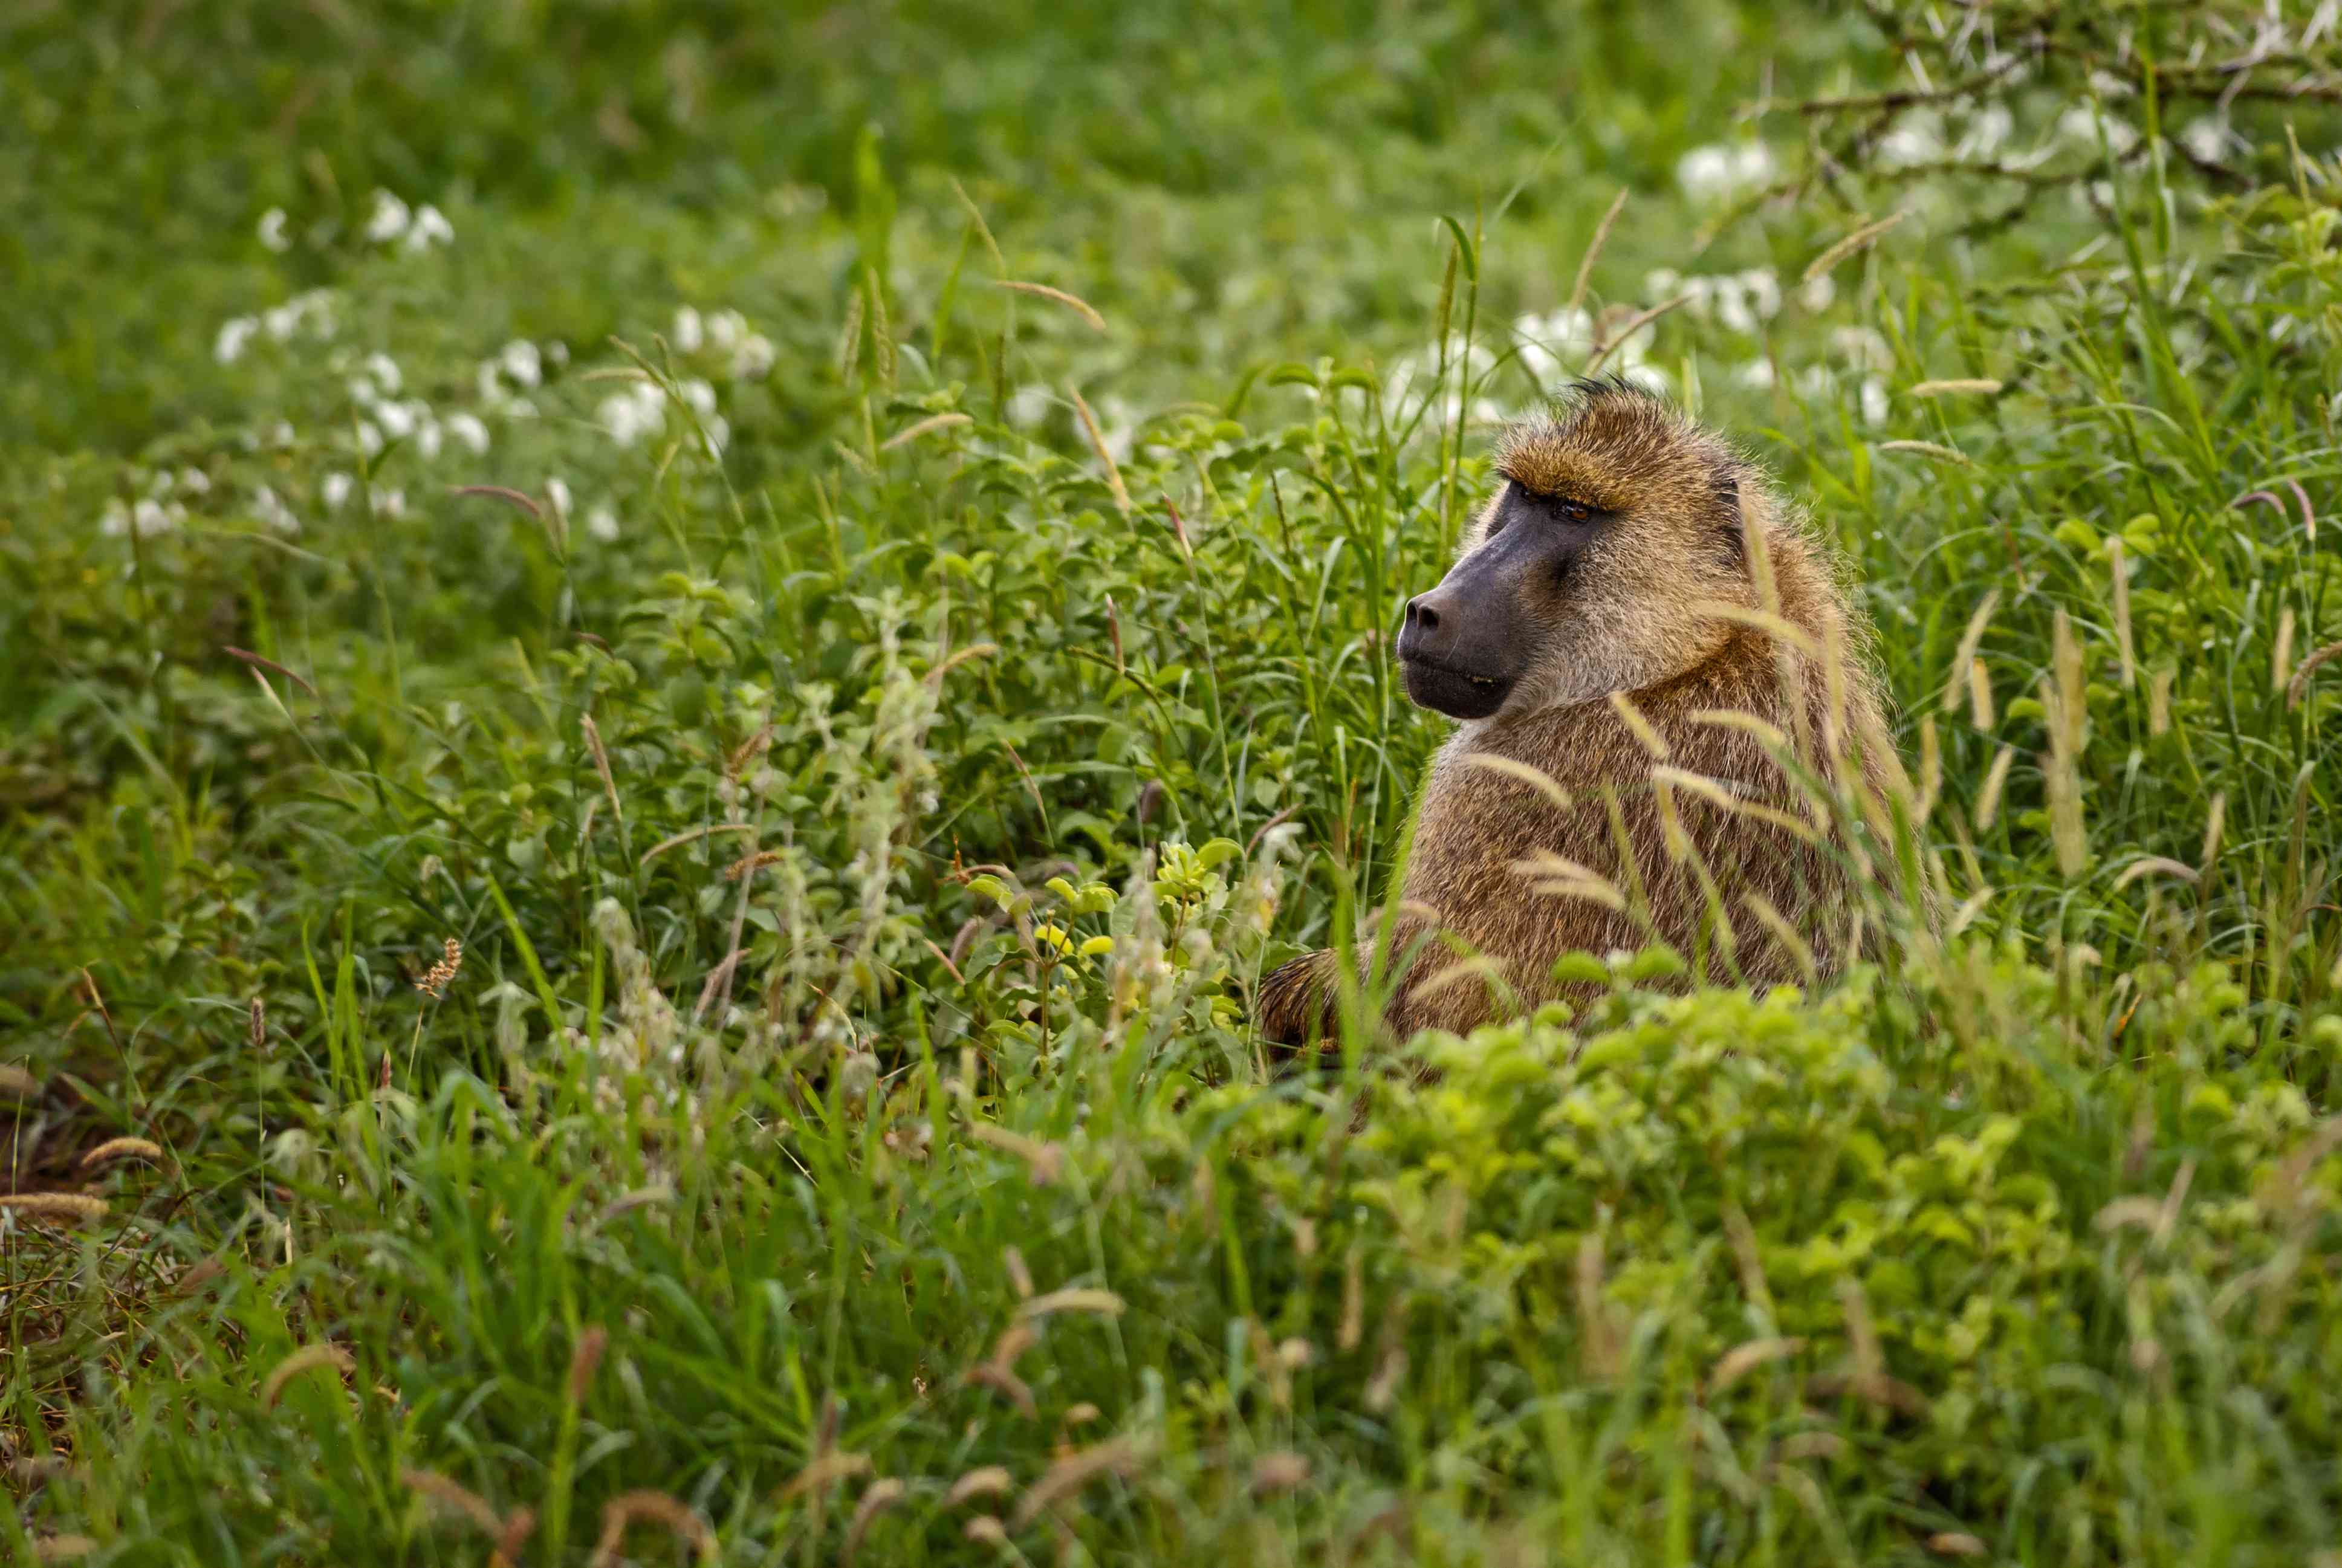 A baboon sits in tall grass.